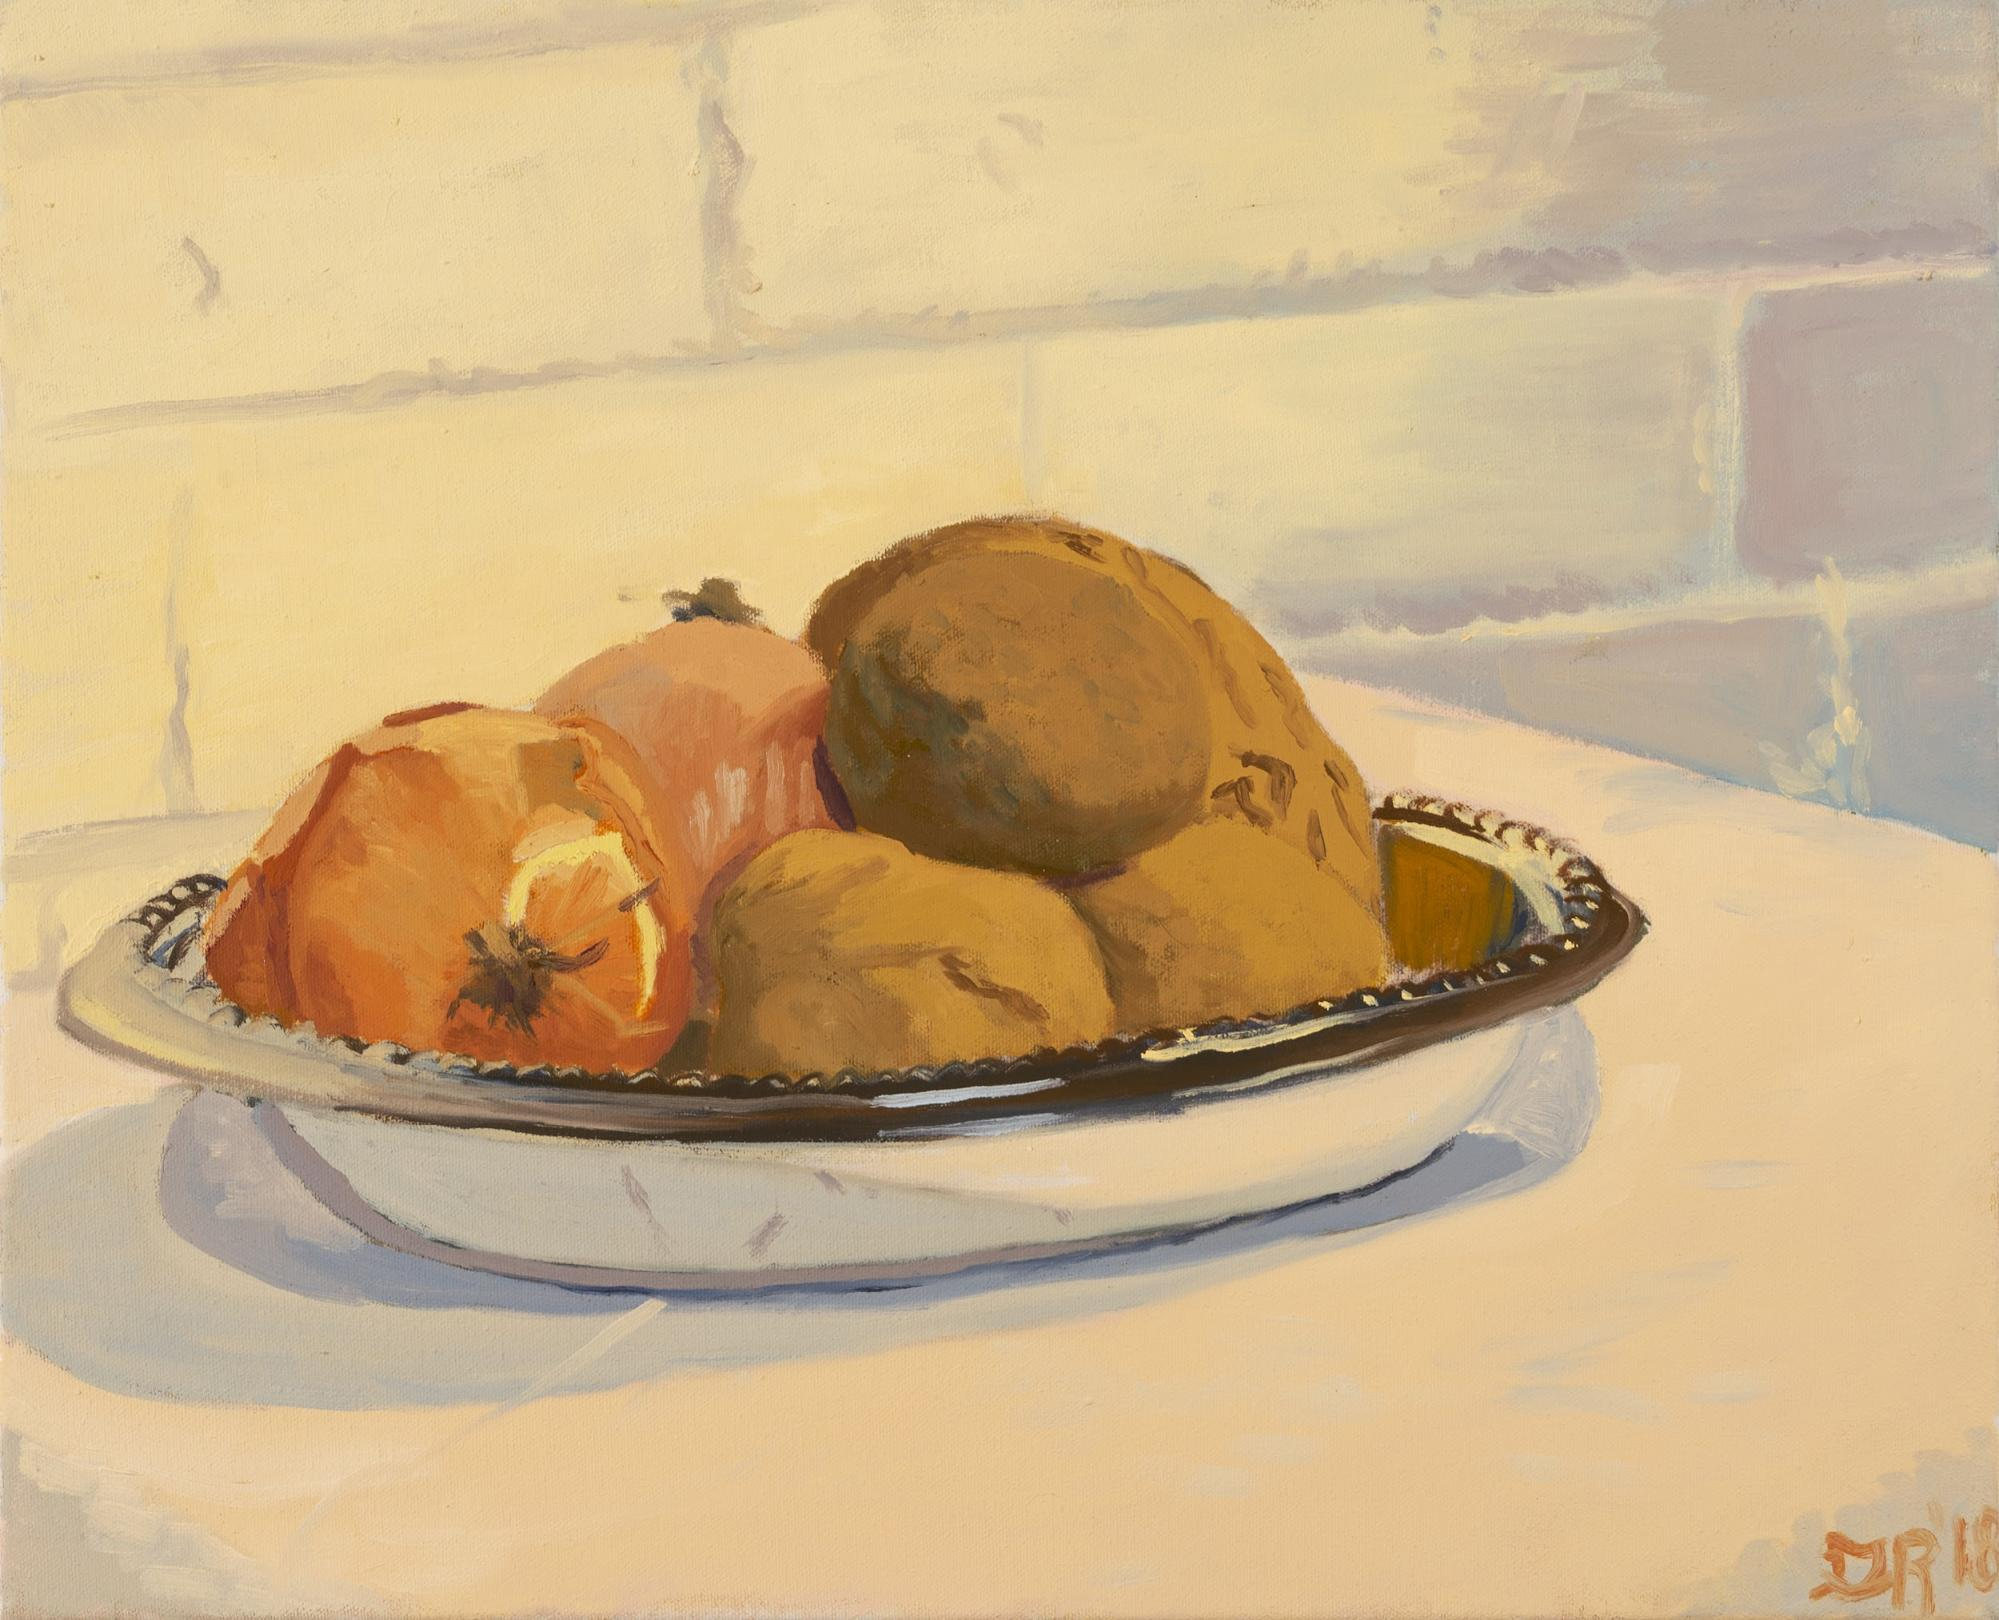 Still Life with Potatoes and Onions in a Silver Tray   Oil on Canvas  2018